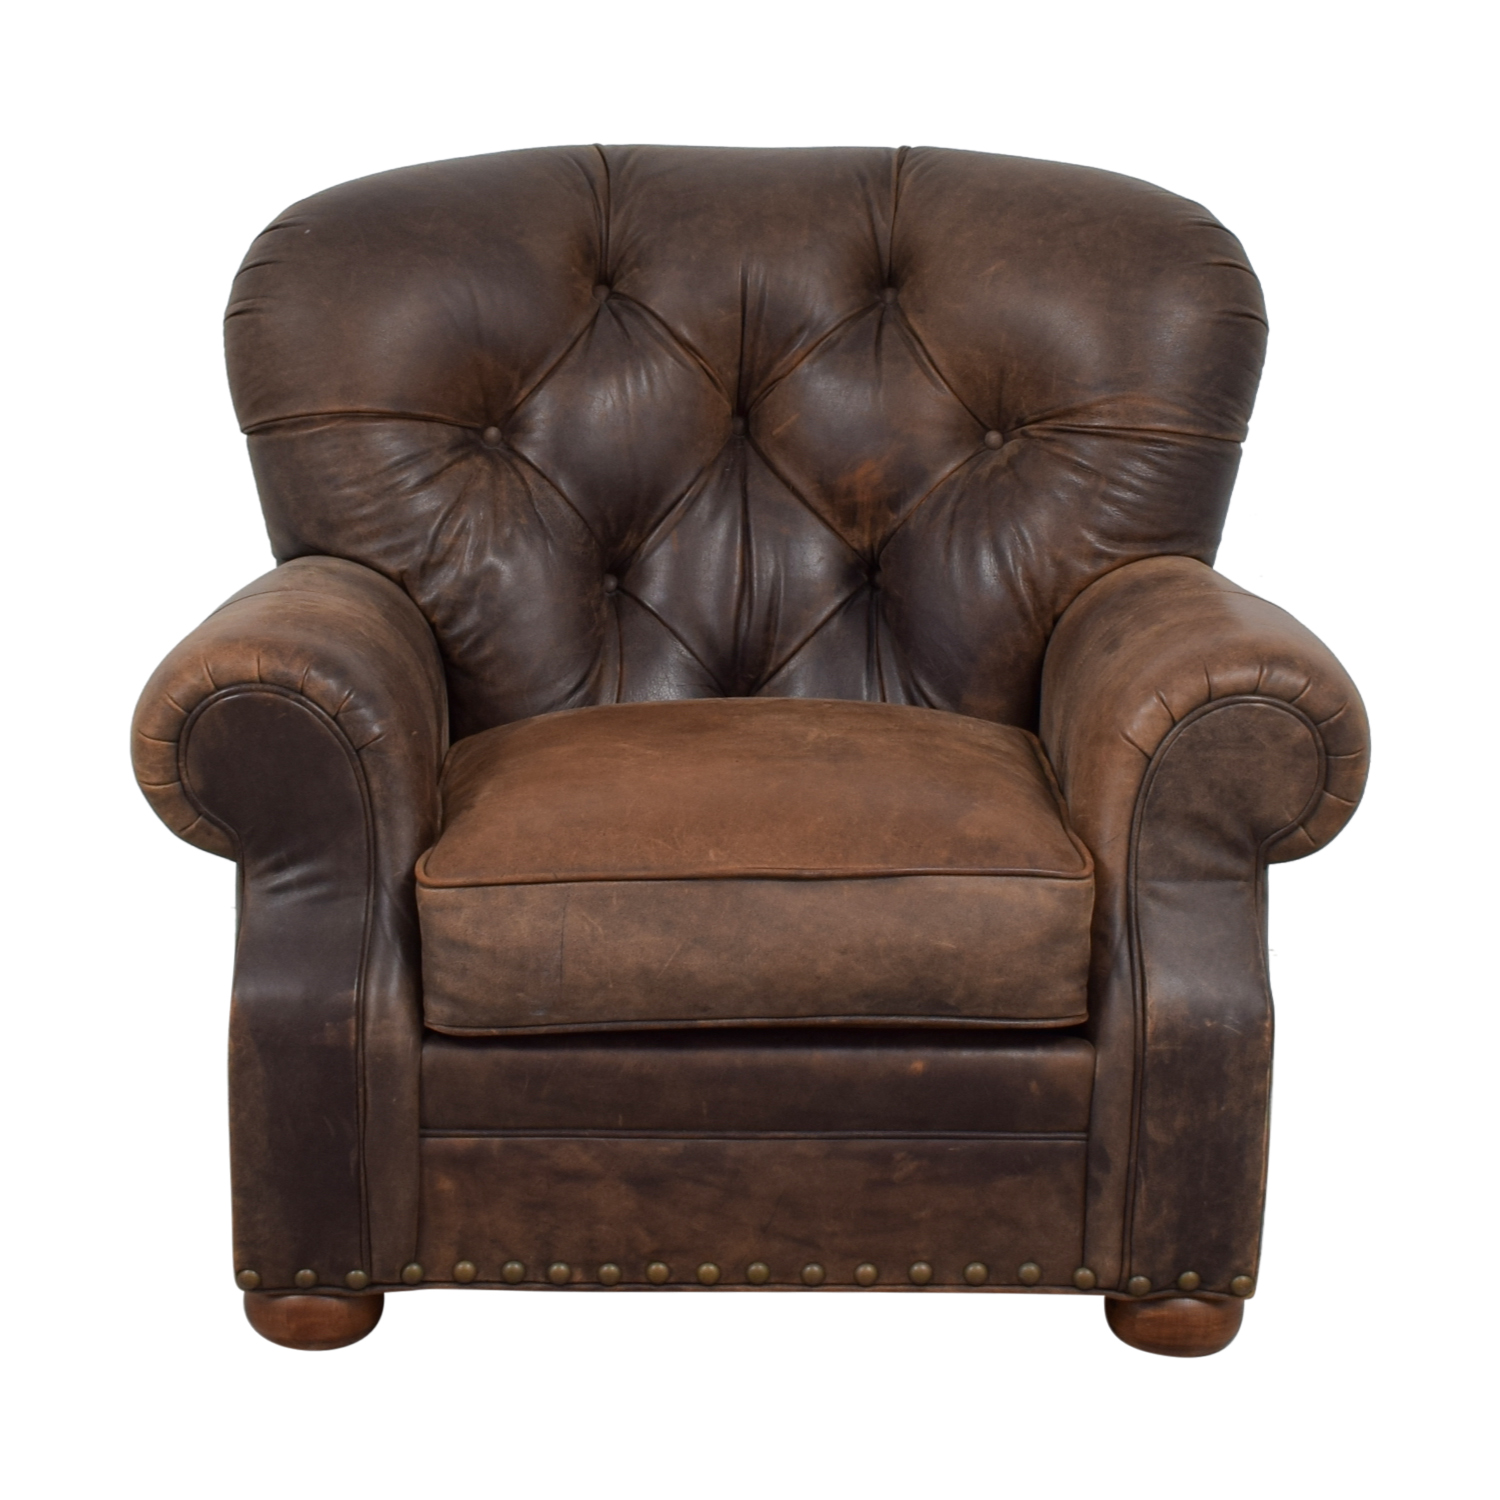 Restoration Hardware Leather Chairs 88 Off Restoration Hardware Restoration Hardware Churchill Brown Leather Tufted Nailhead Chair Chairs